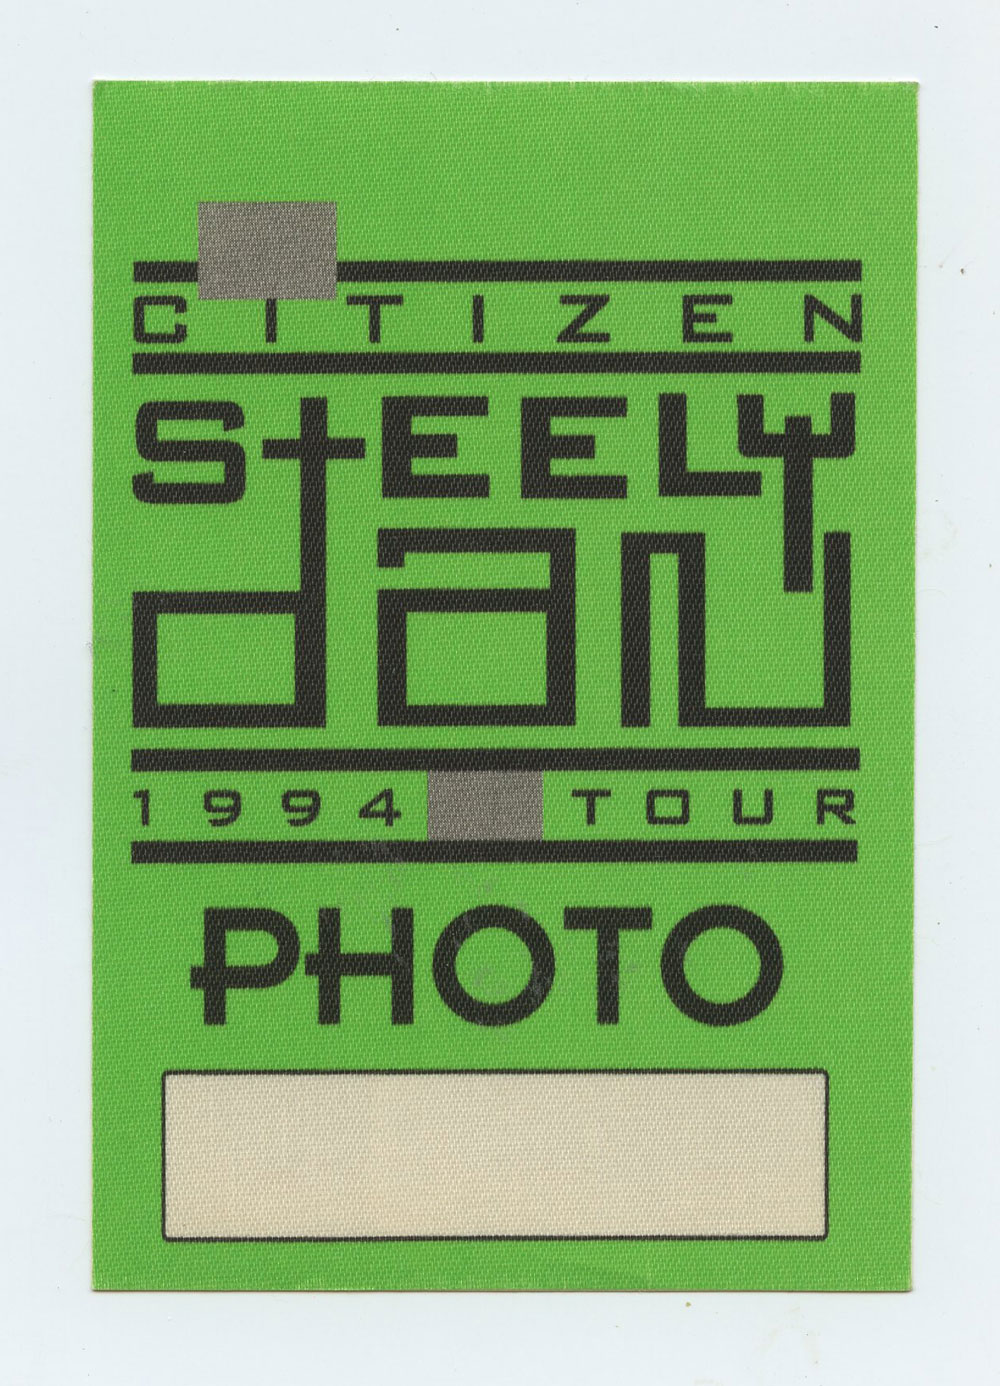 Steely Dan 1994 Tour Backstage Pass